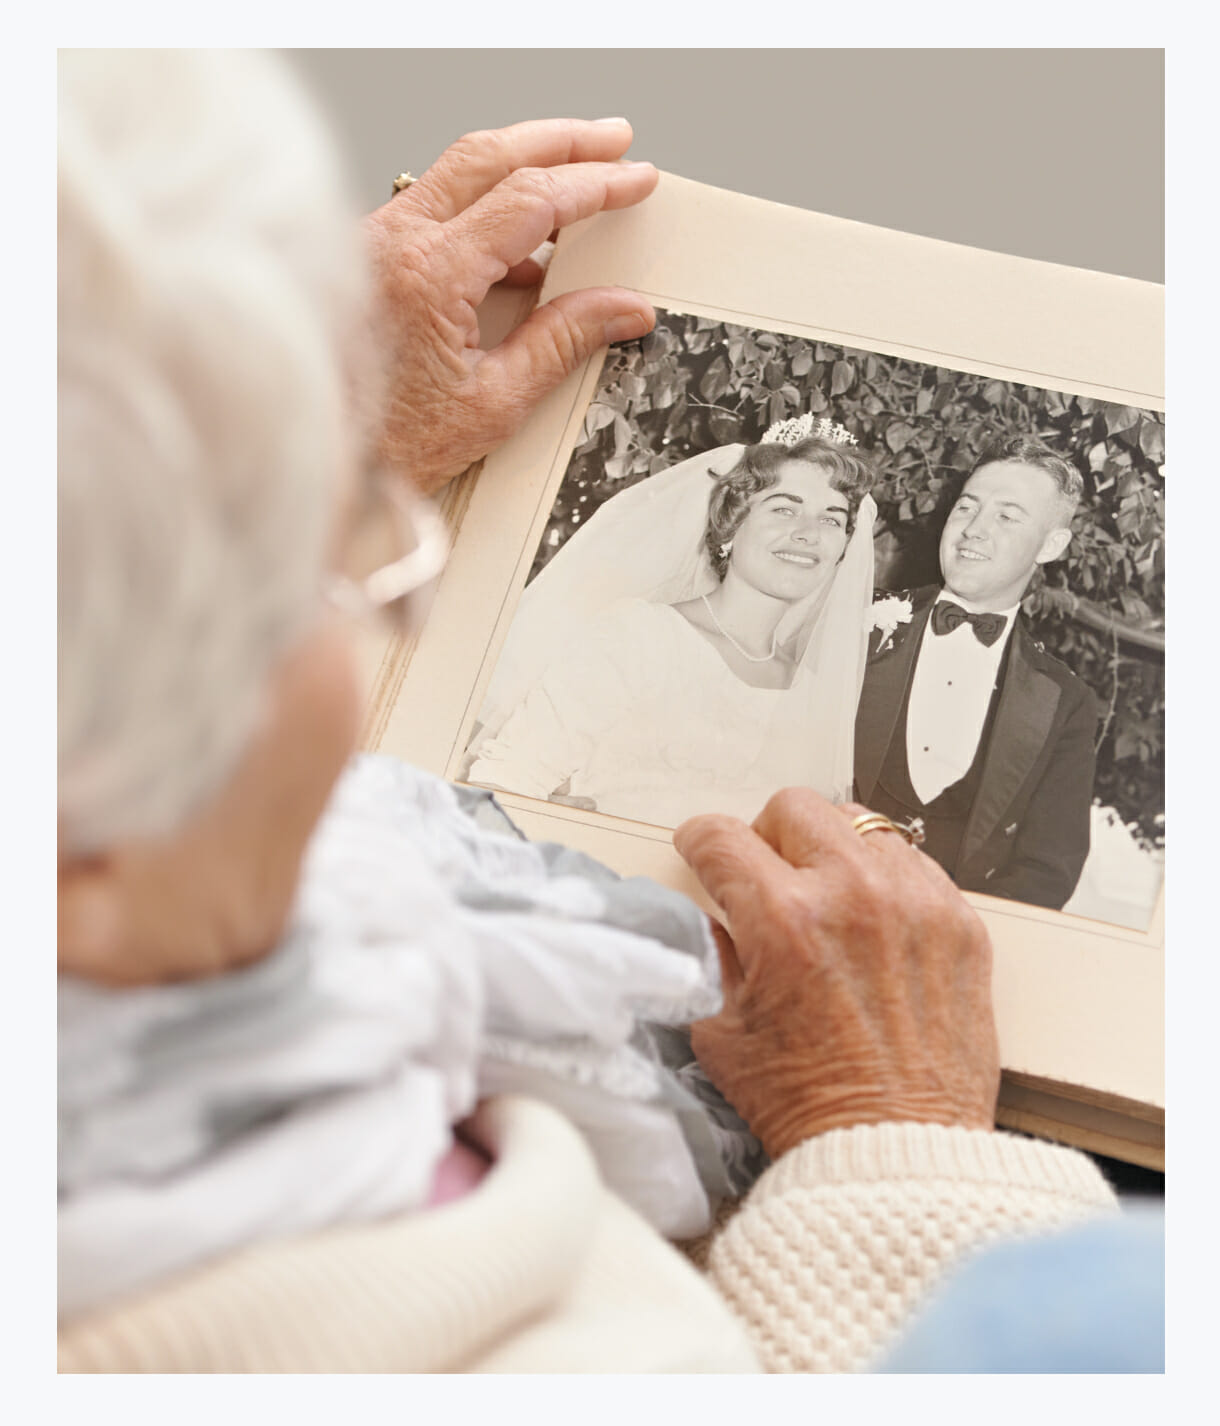 Memory Care Assisted Living resident looking at old photo, innovative memory stimulation, all-inclusive care